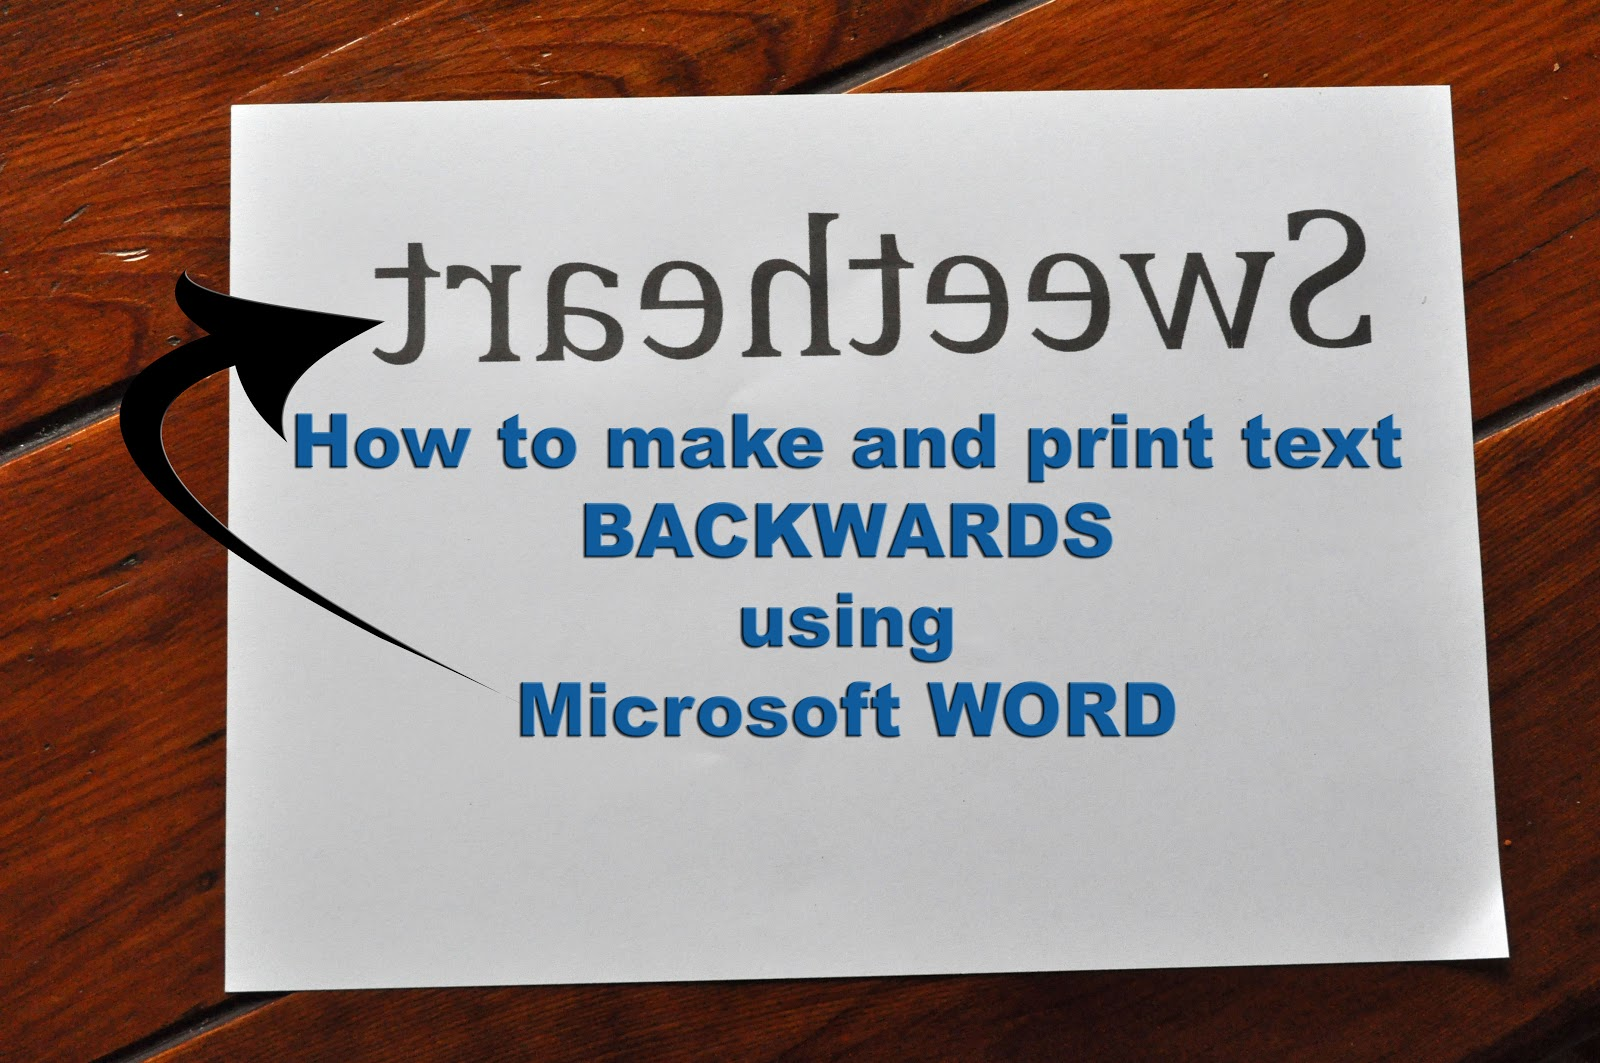 19 Backwards Font In Word Images